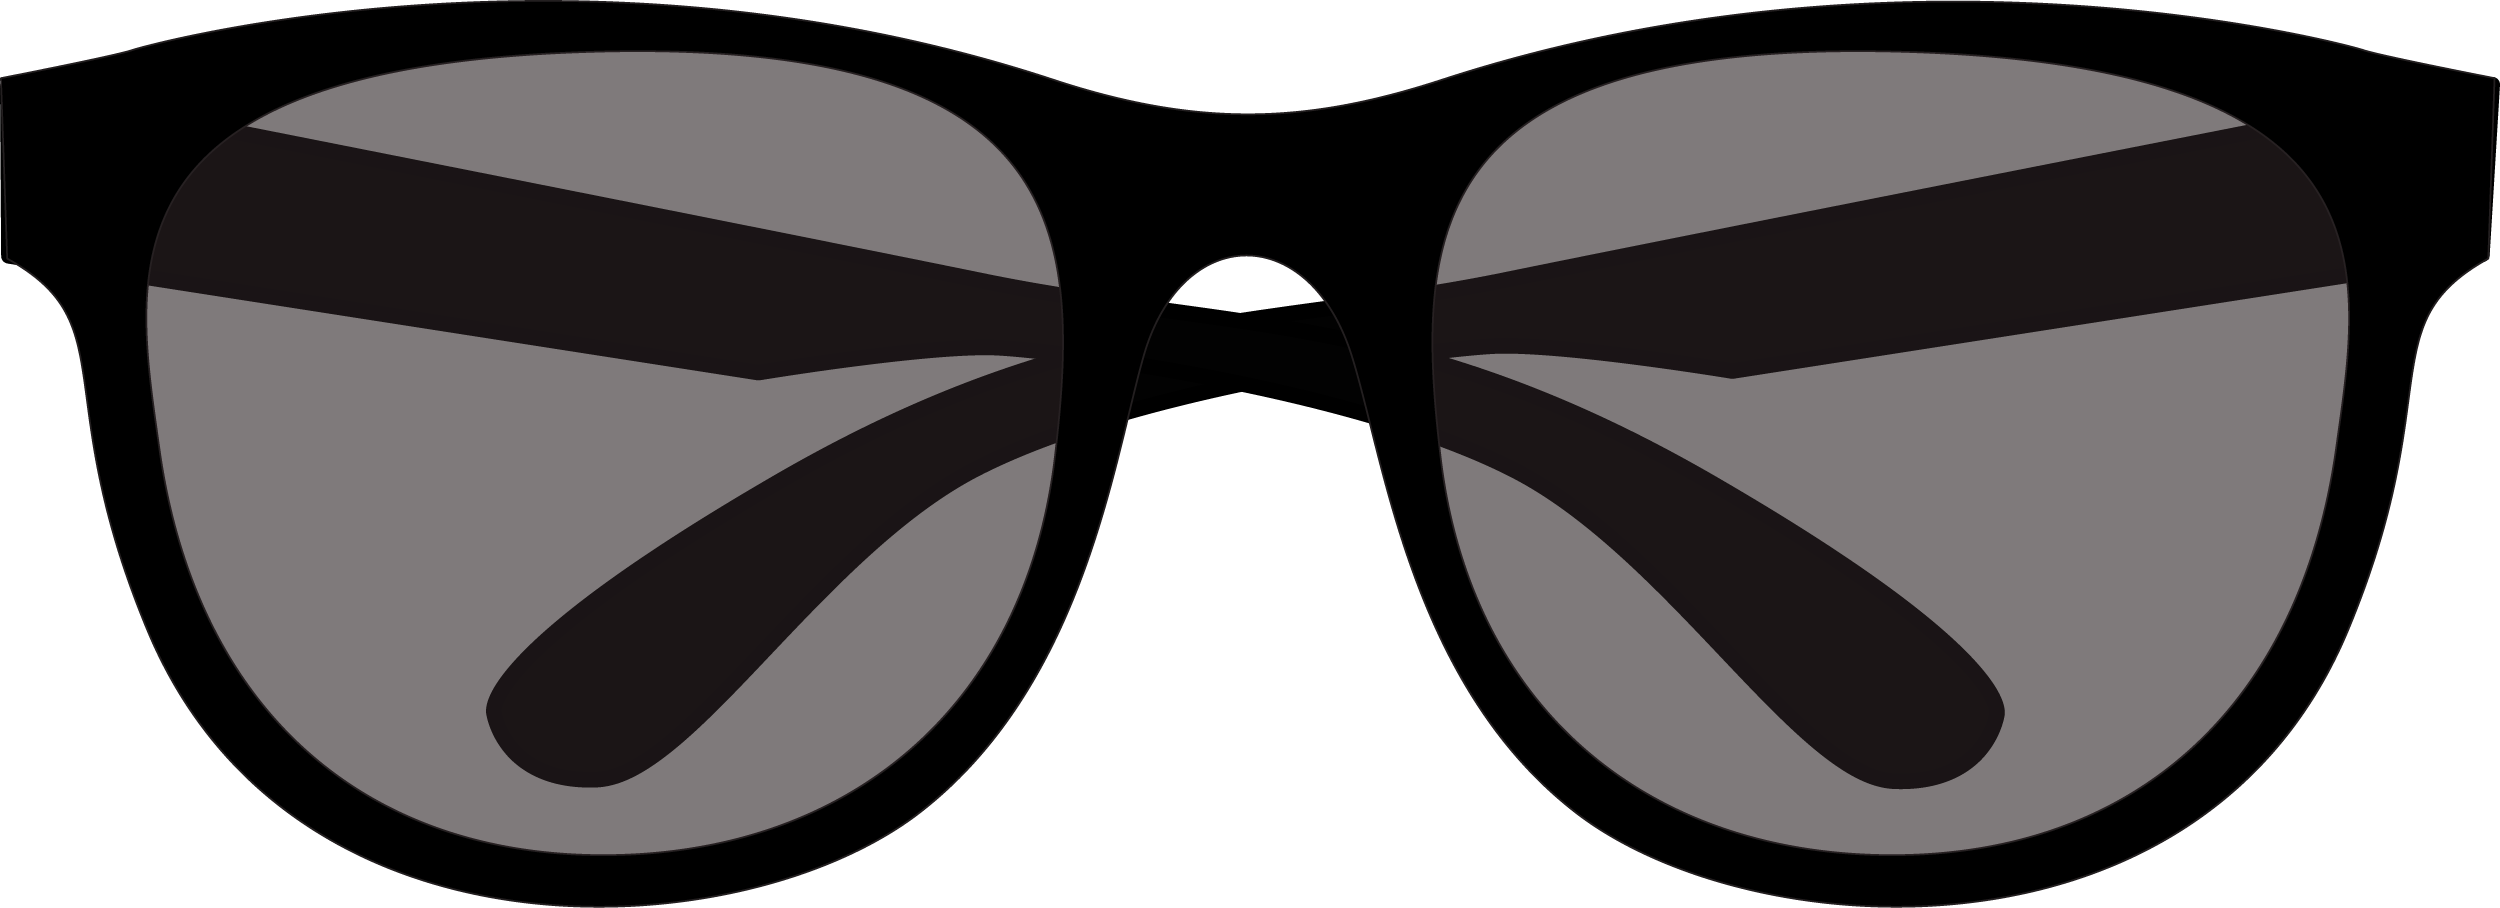 Square Glasses PNG